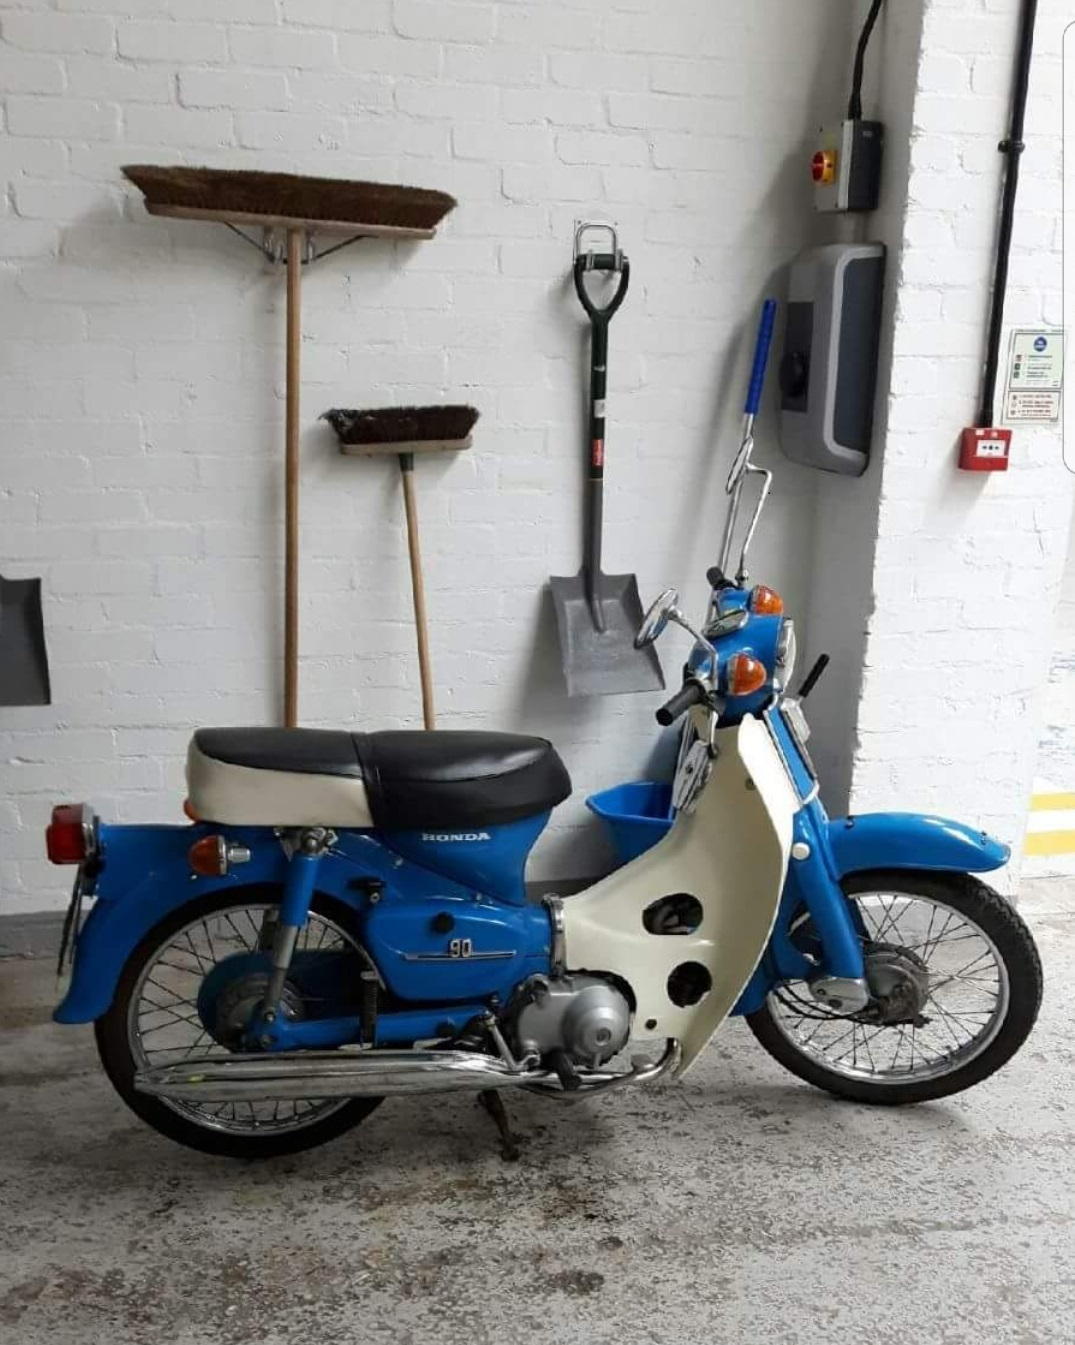 The Honda C90 scooter that was stolen.